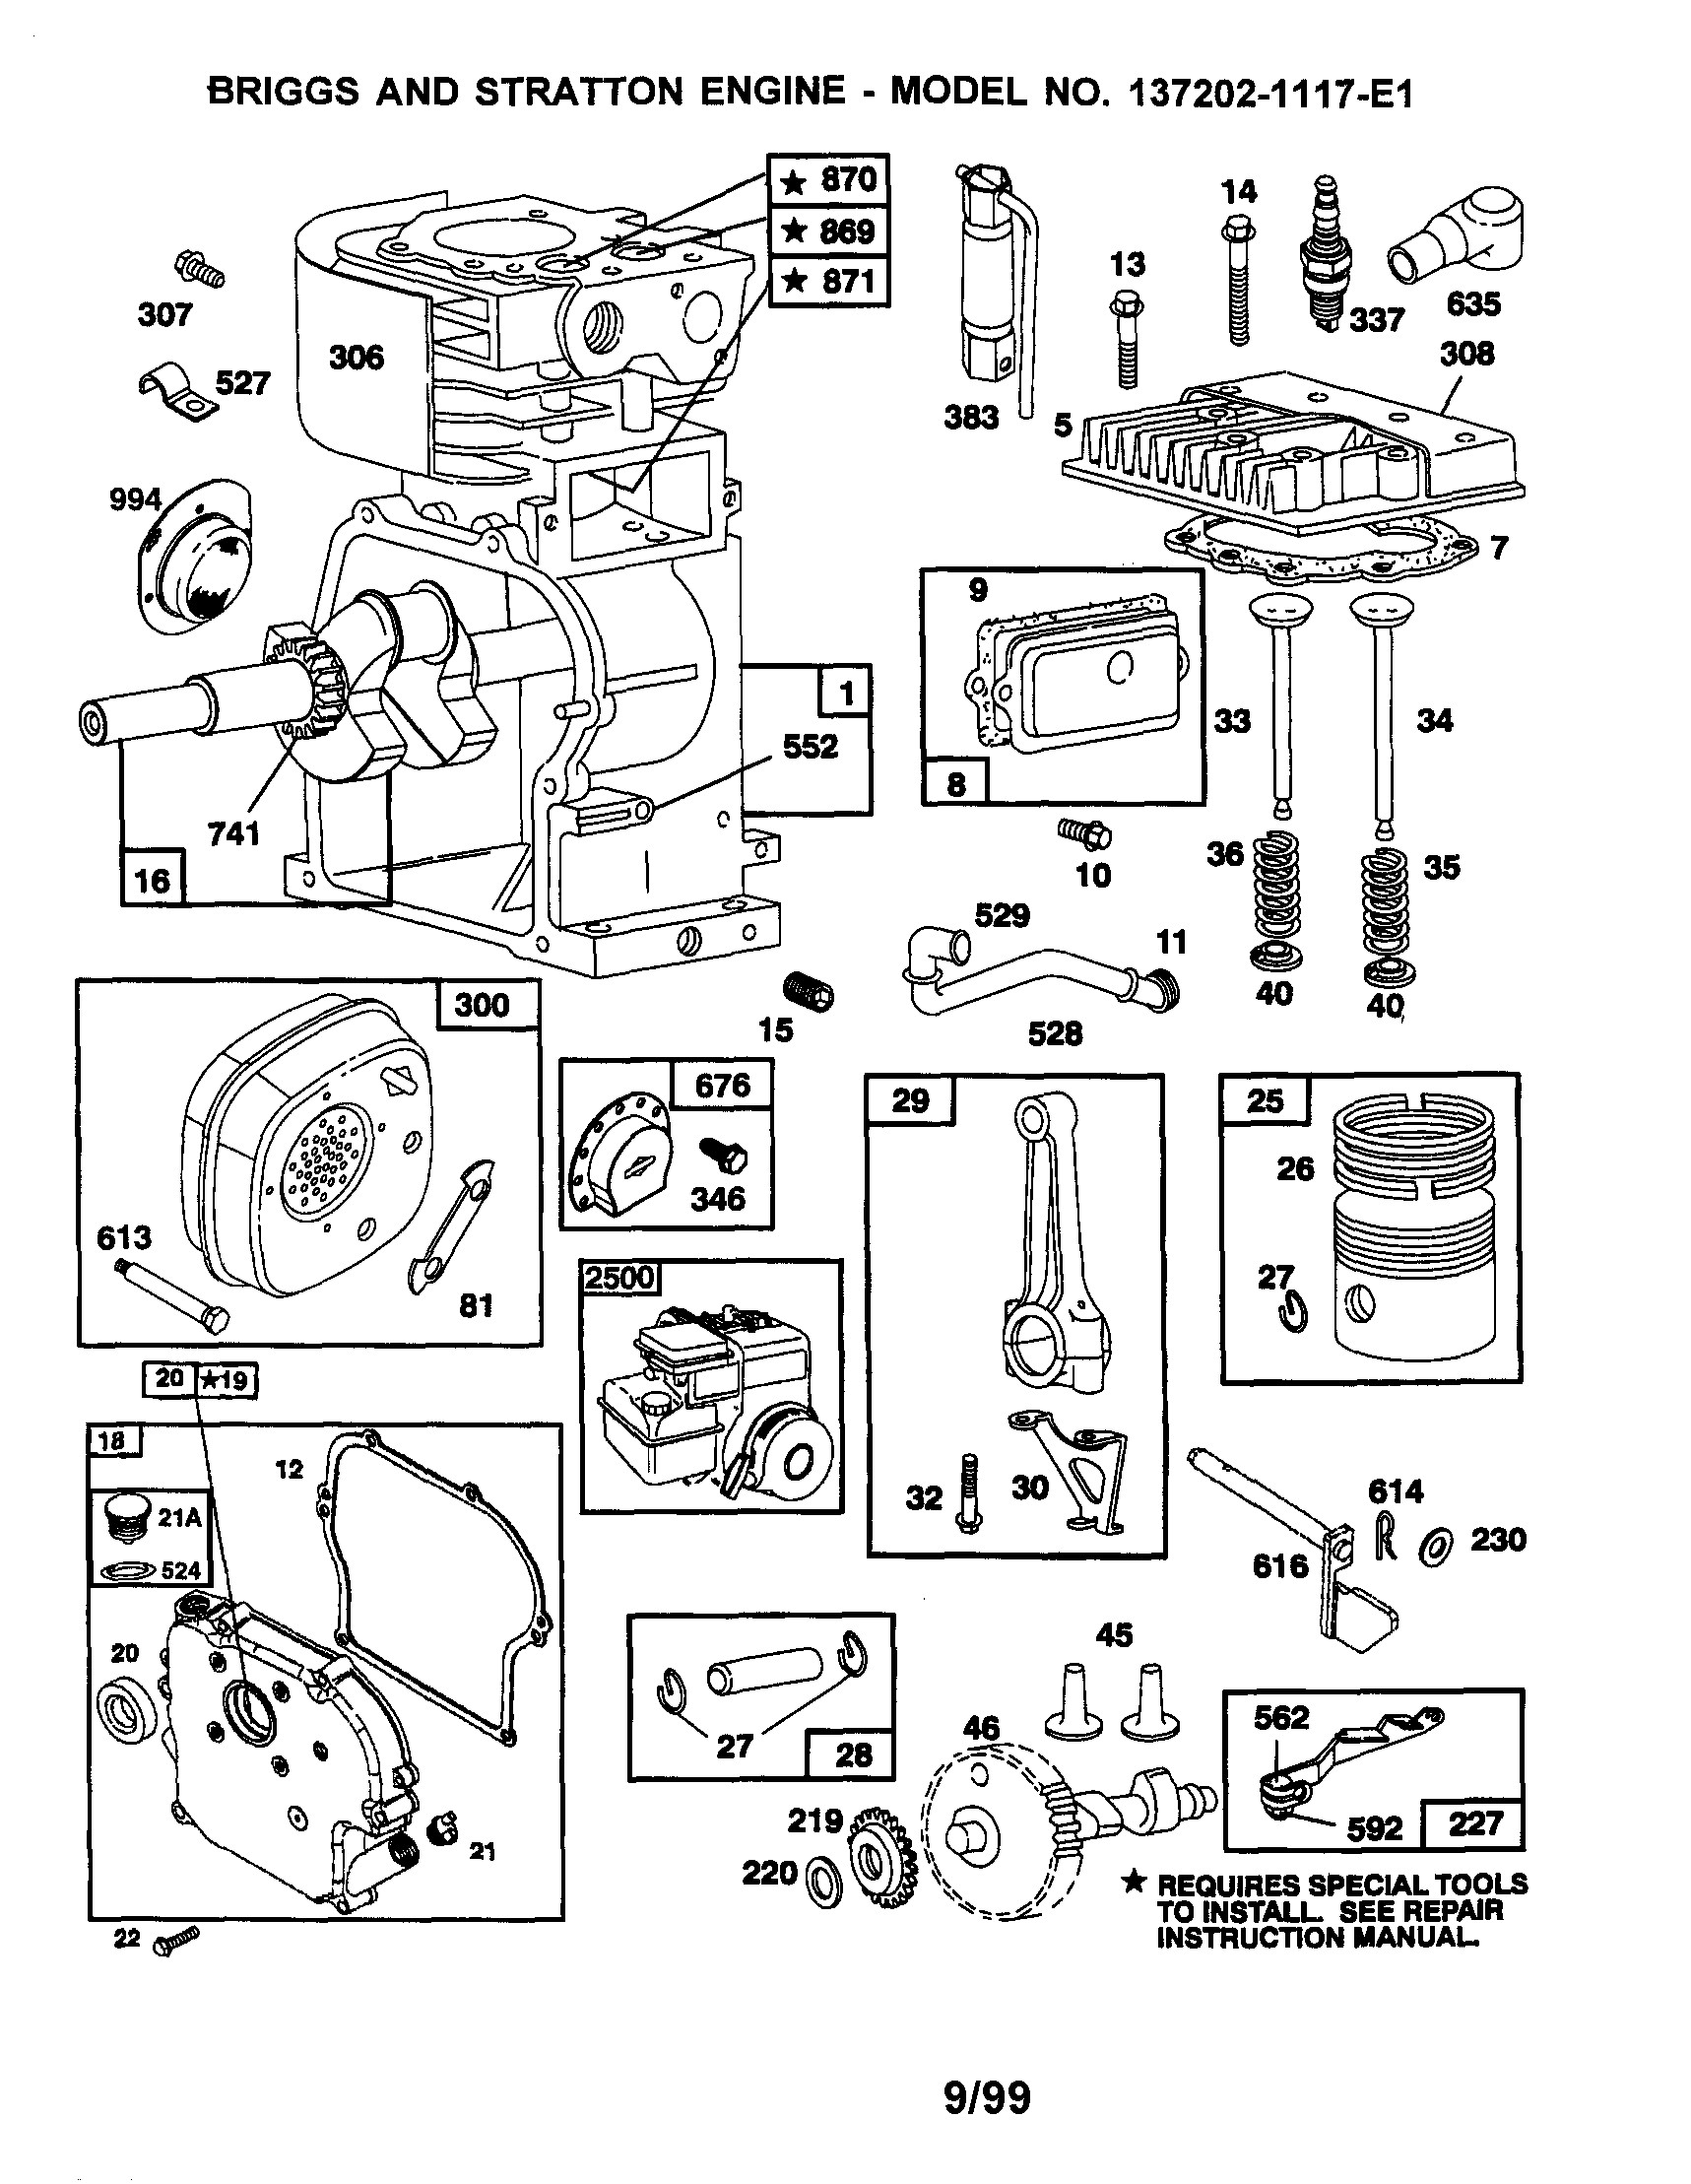 Briggs and Stratton Lawn Mower Engine Parts Diagram Wiring Diagram Briggs and Stratton Engine Of Briggs and Stratton Lawn Mower Engine Parts Diagram